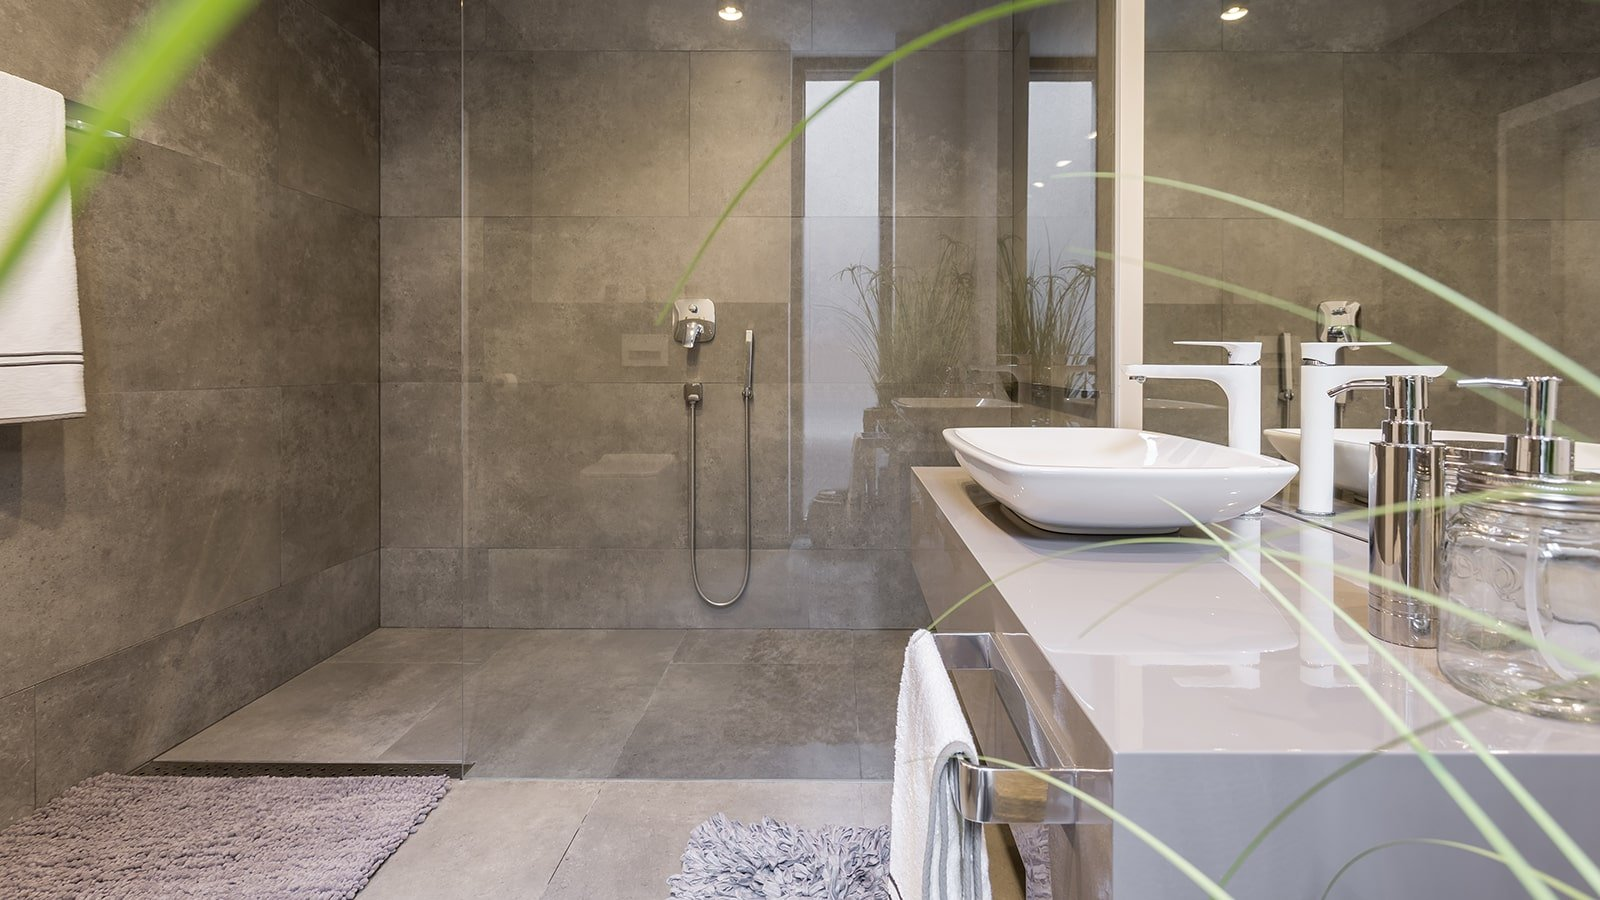 Spacious bathroom with ceramic shower